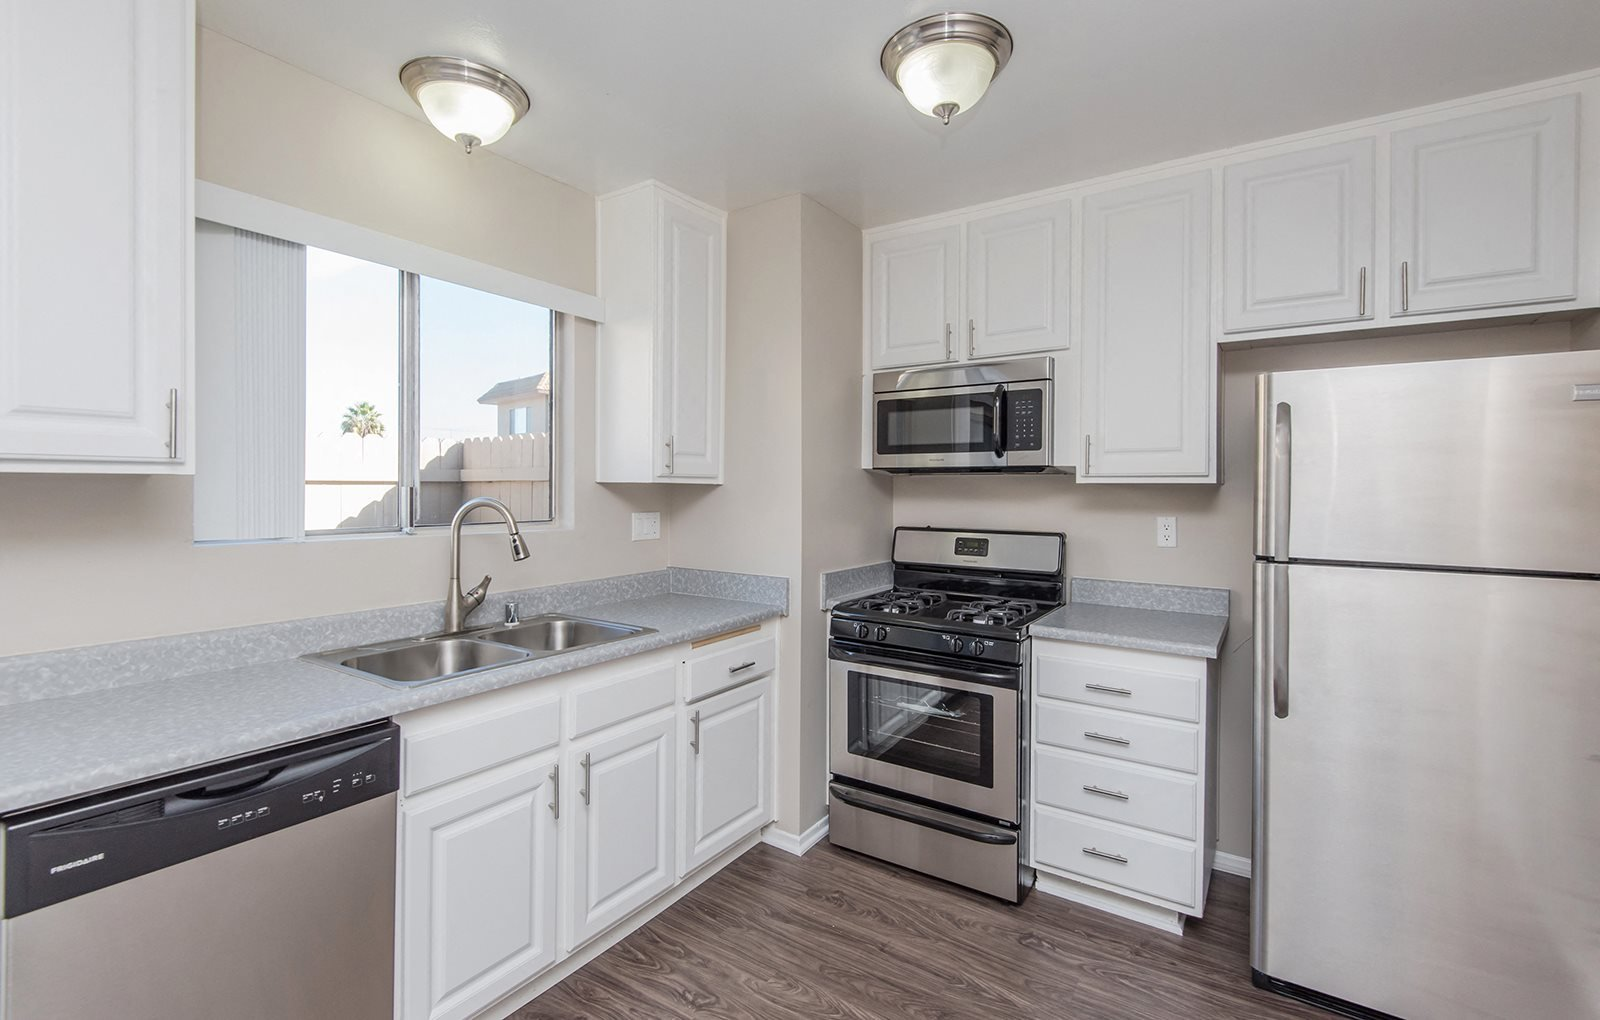 KItchen Westerly Shores Apartments For Rent in Oxnard Ca